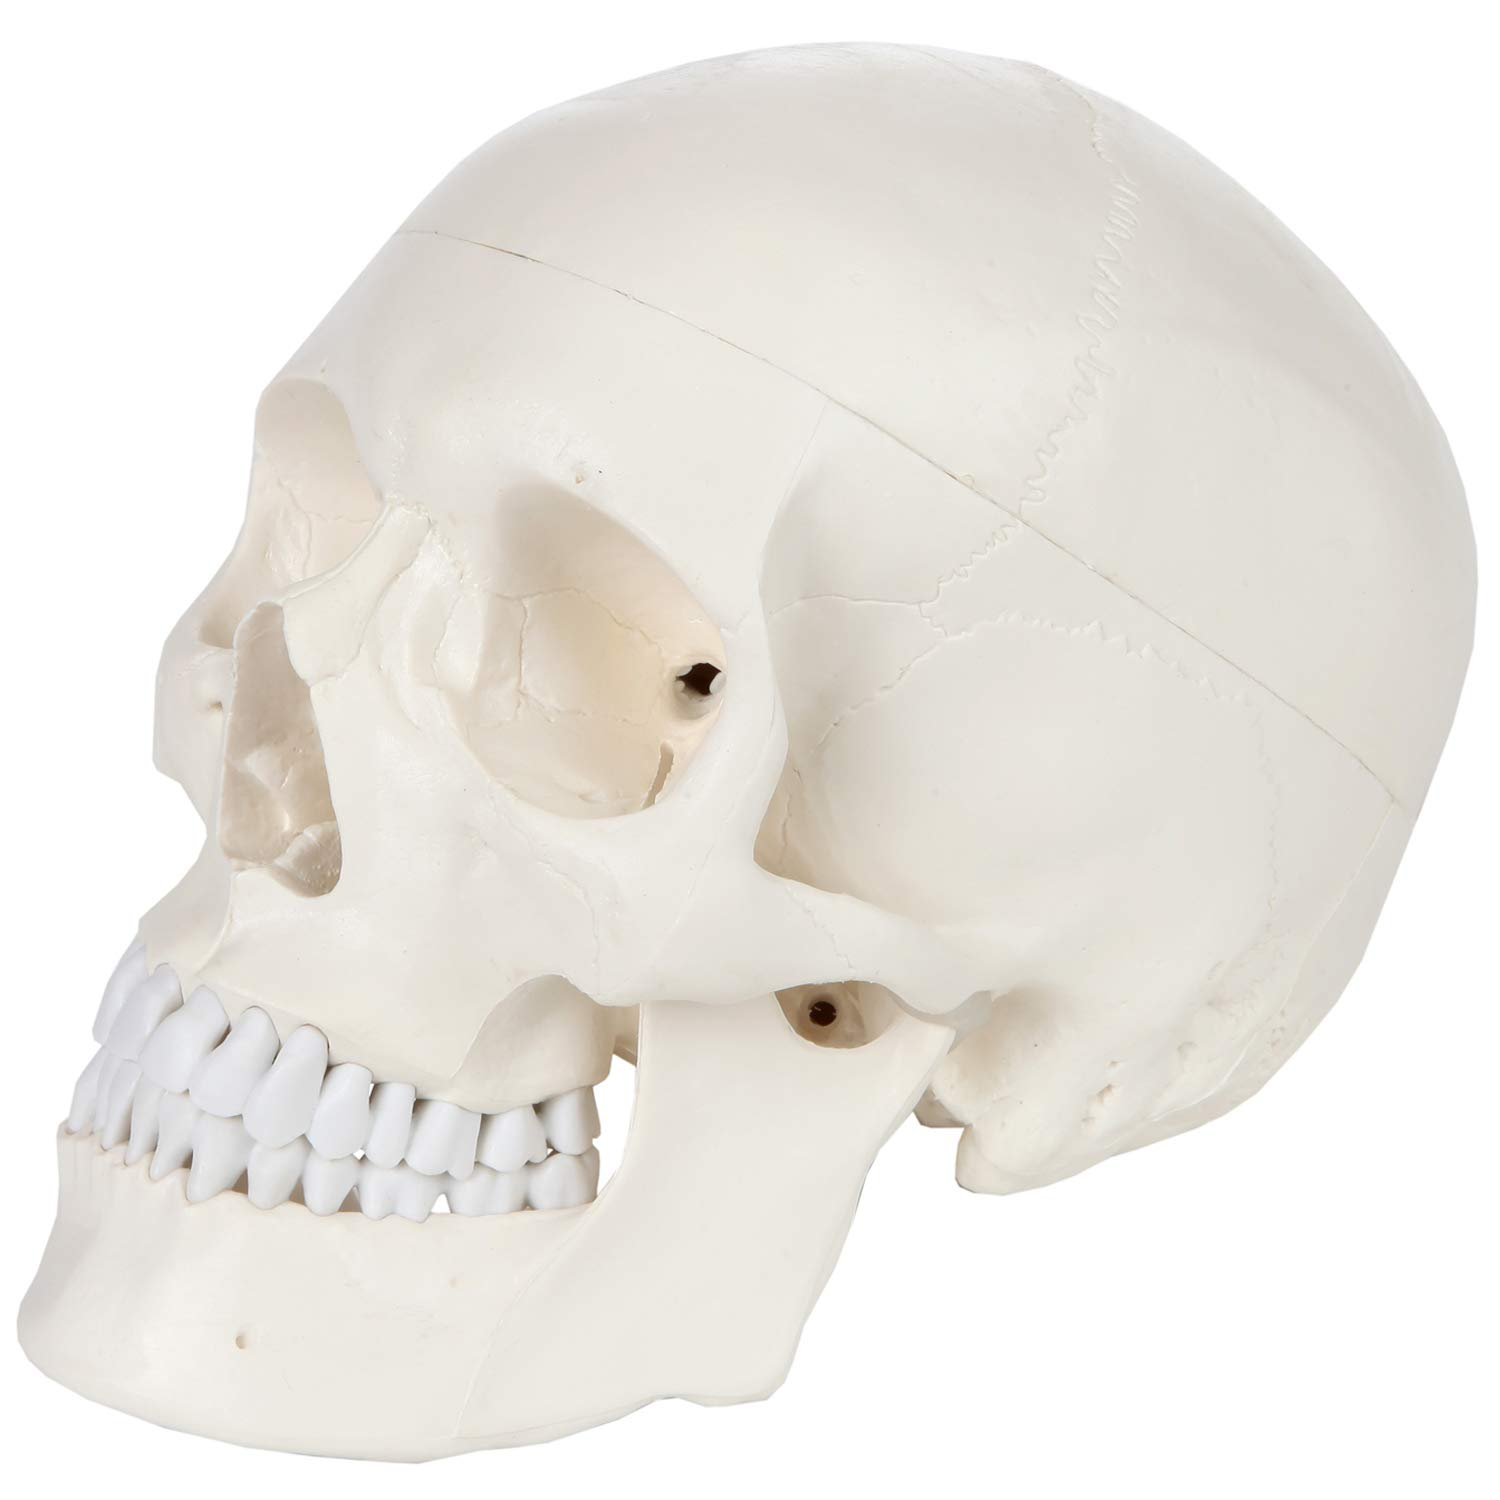 Human Skull Model Anatomical Medical Head Skeleton Life Size Adult Specimen for Education for School